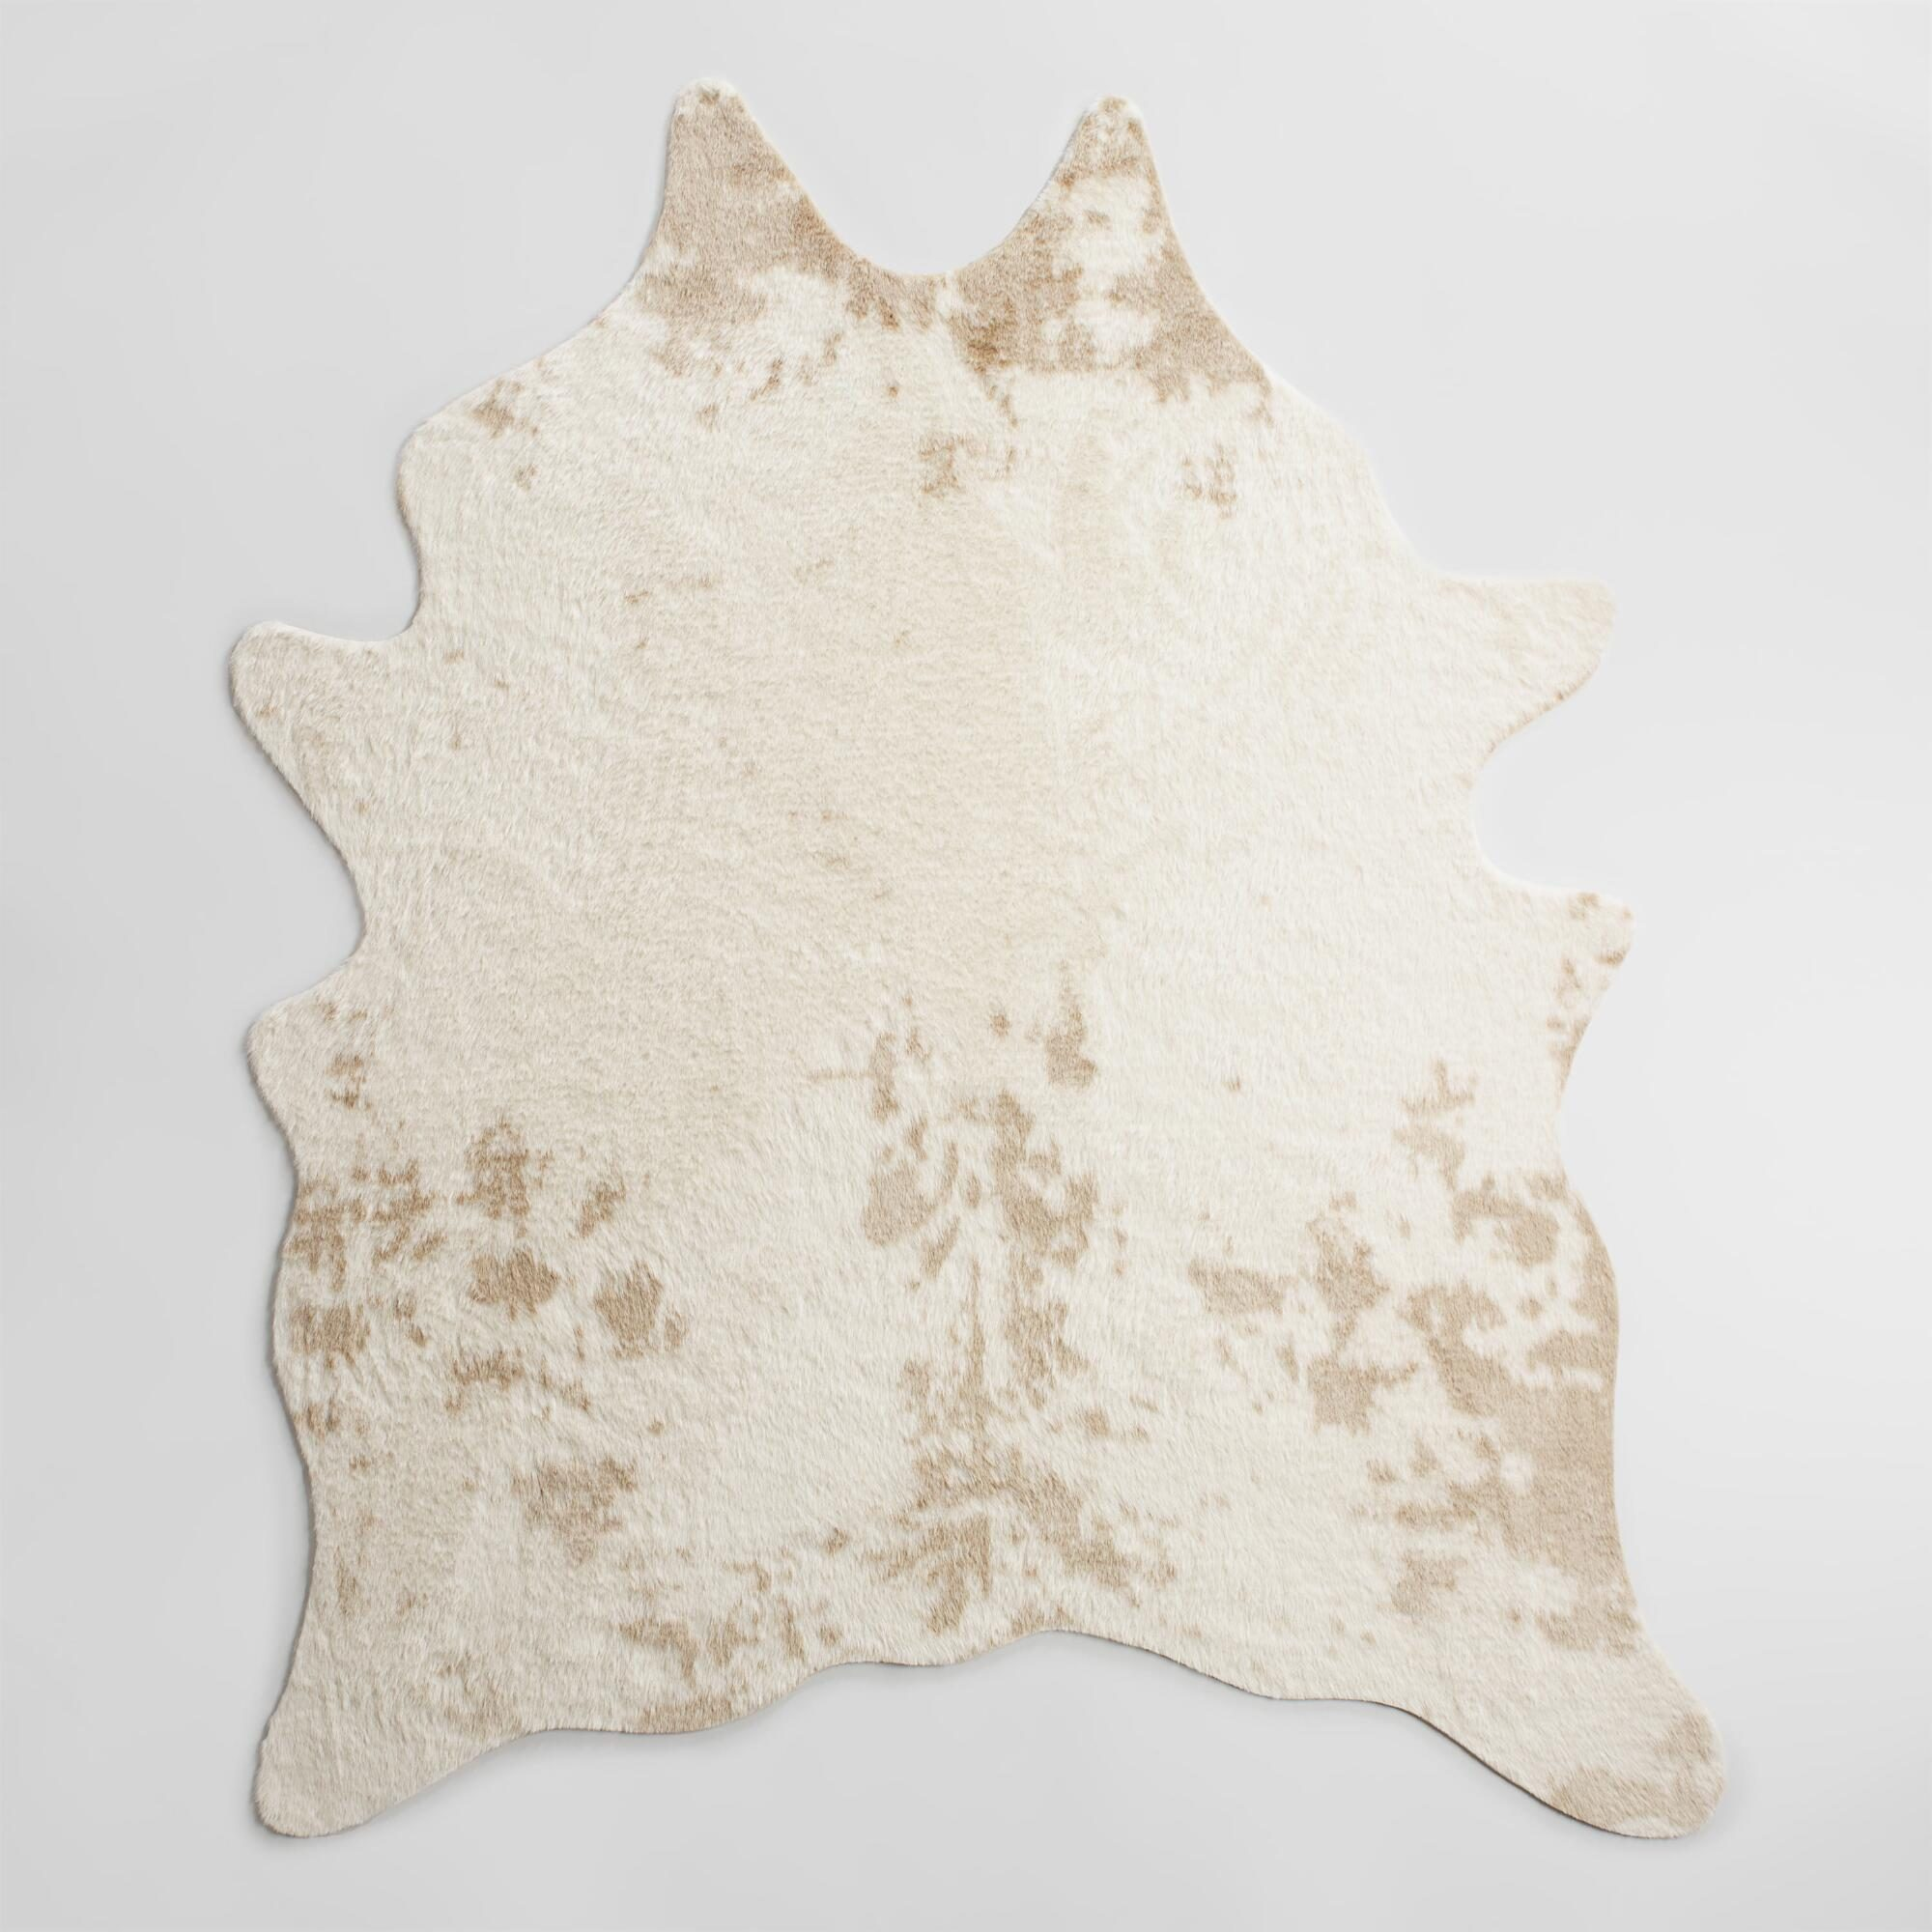 Ivory Printed Faux Cowhide Area Rug: White - Polyester - 5' x 8' by World Market 5Ftx6Ft7""